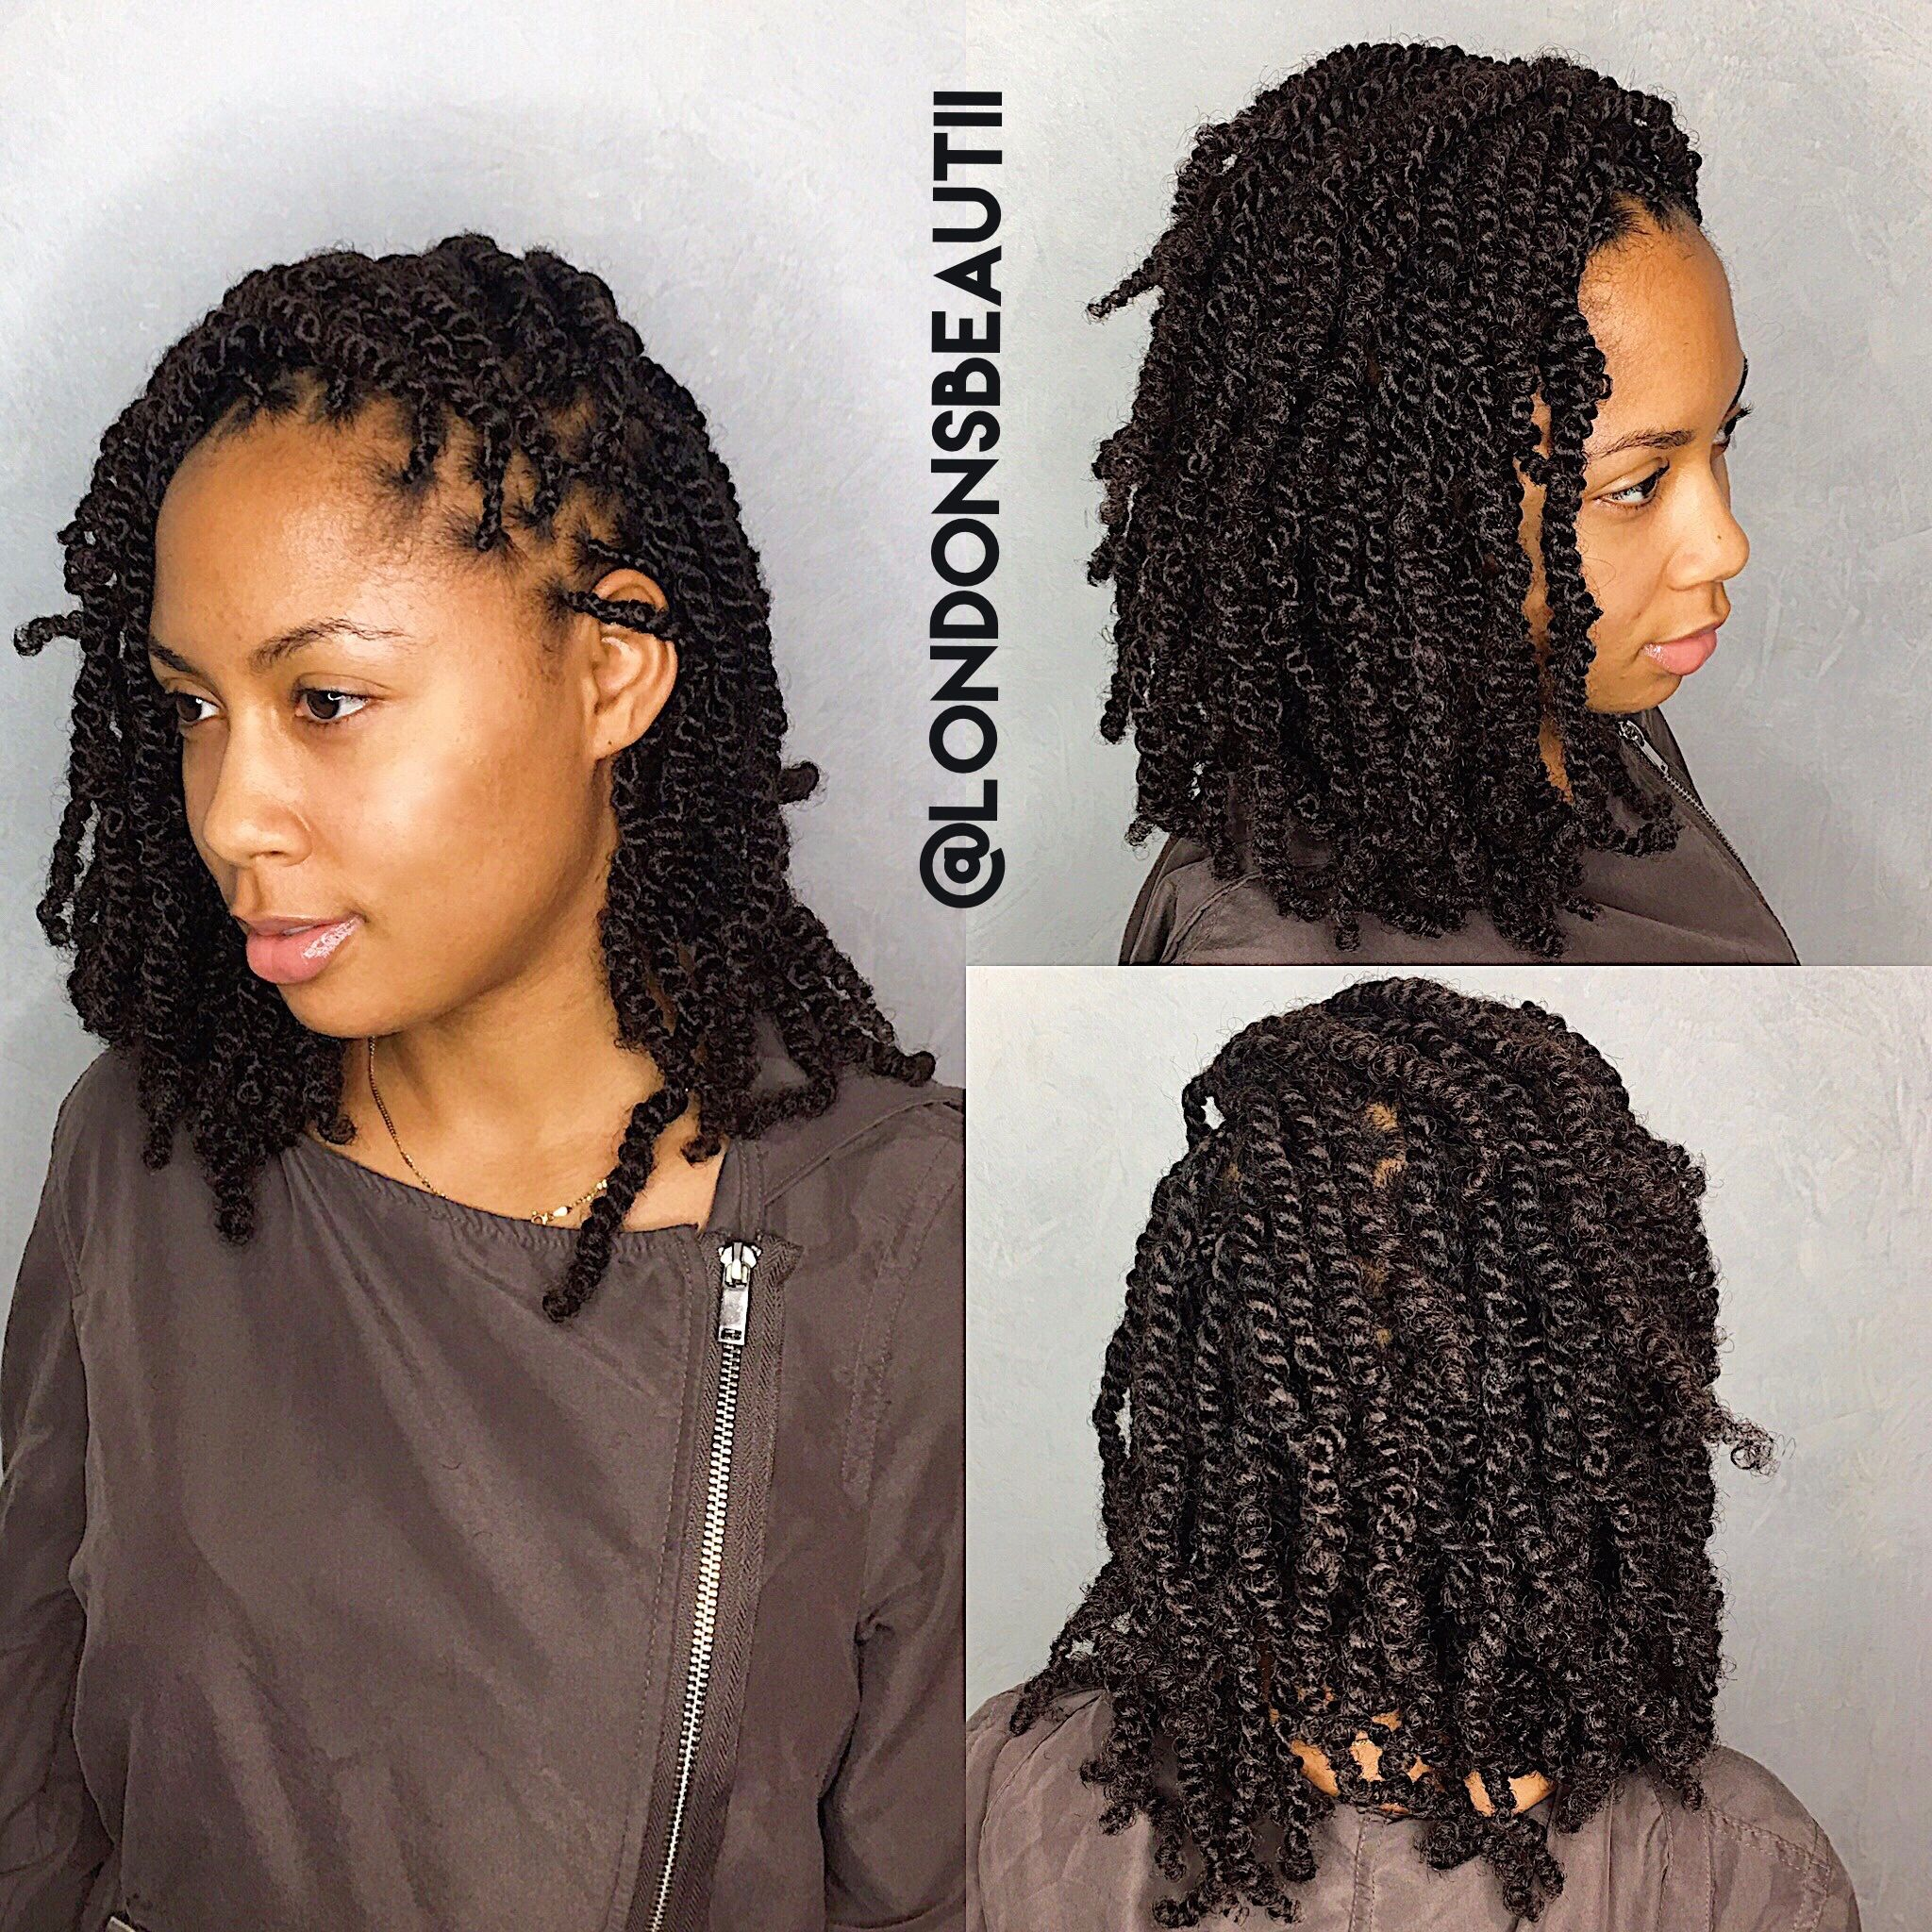 Twisties Hairstyles Fascinating Spring Twist Donelondon's Beautii In Bowie Marylandwww